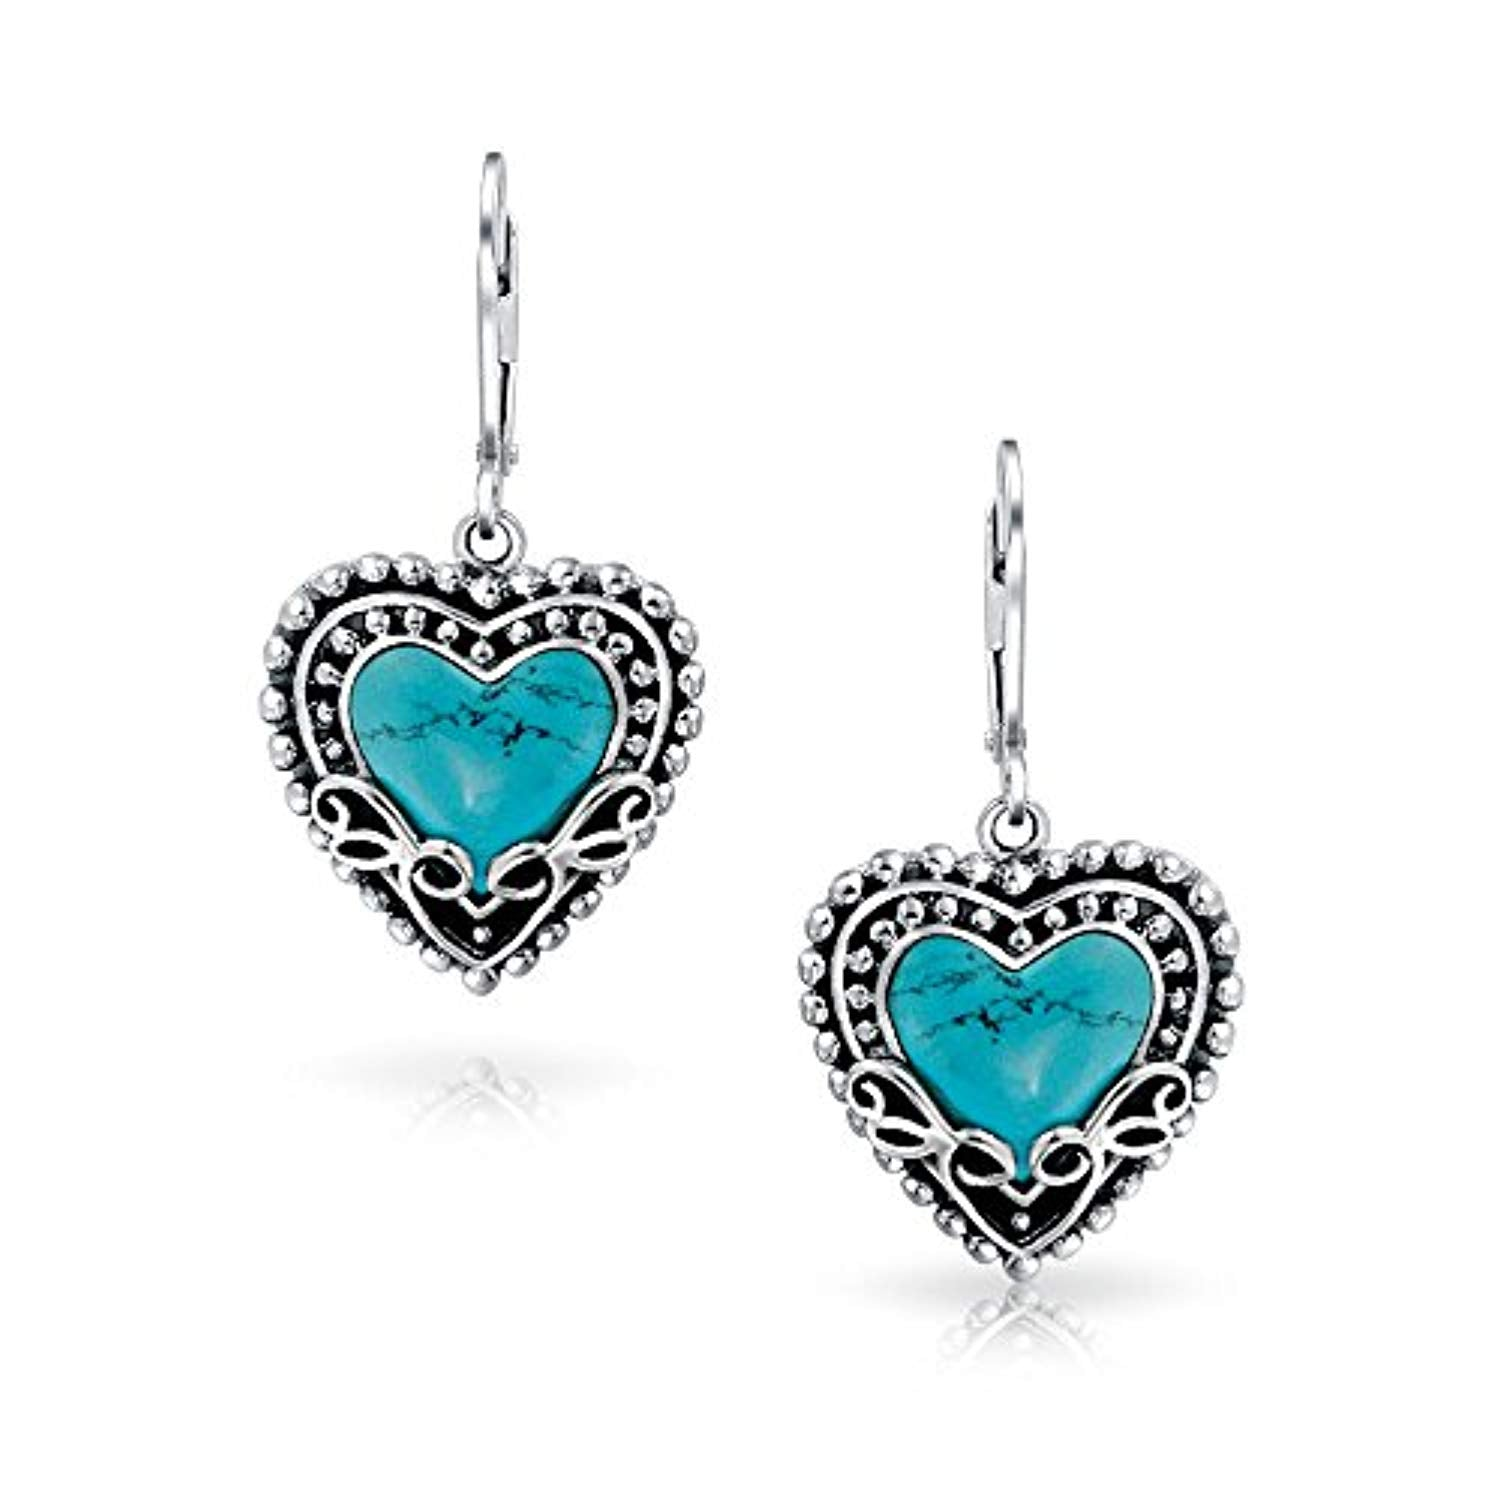 Bali Style Stabilized Turquoise Heart Shape Leverback Drop Earrings For Women Oxidized 925 Sterling Silver